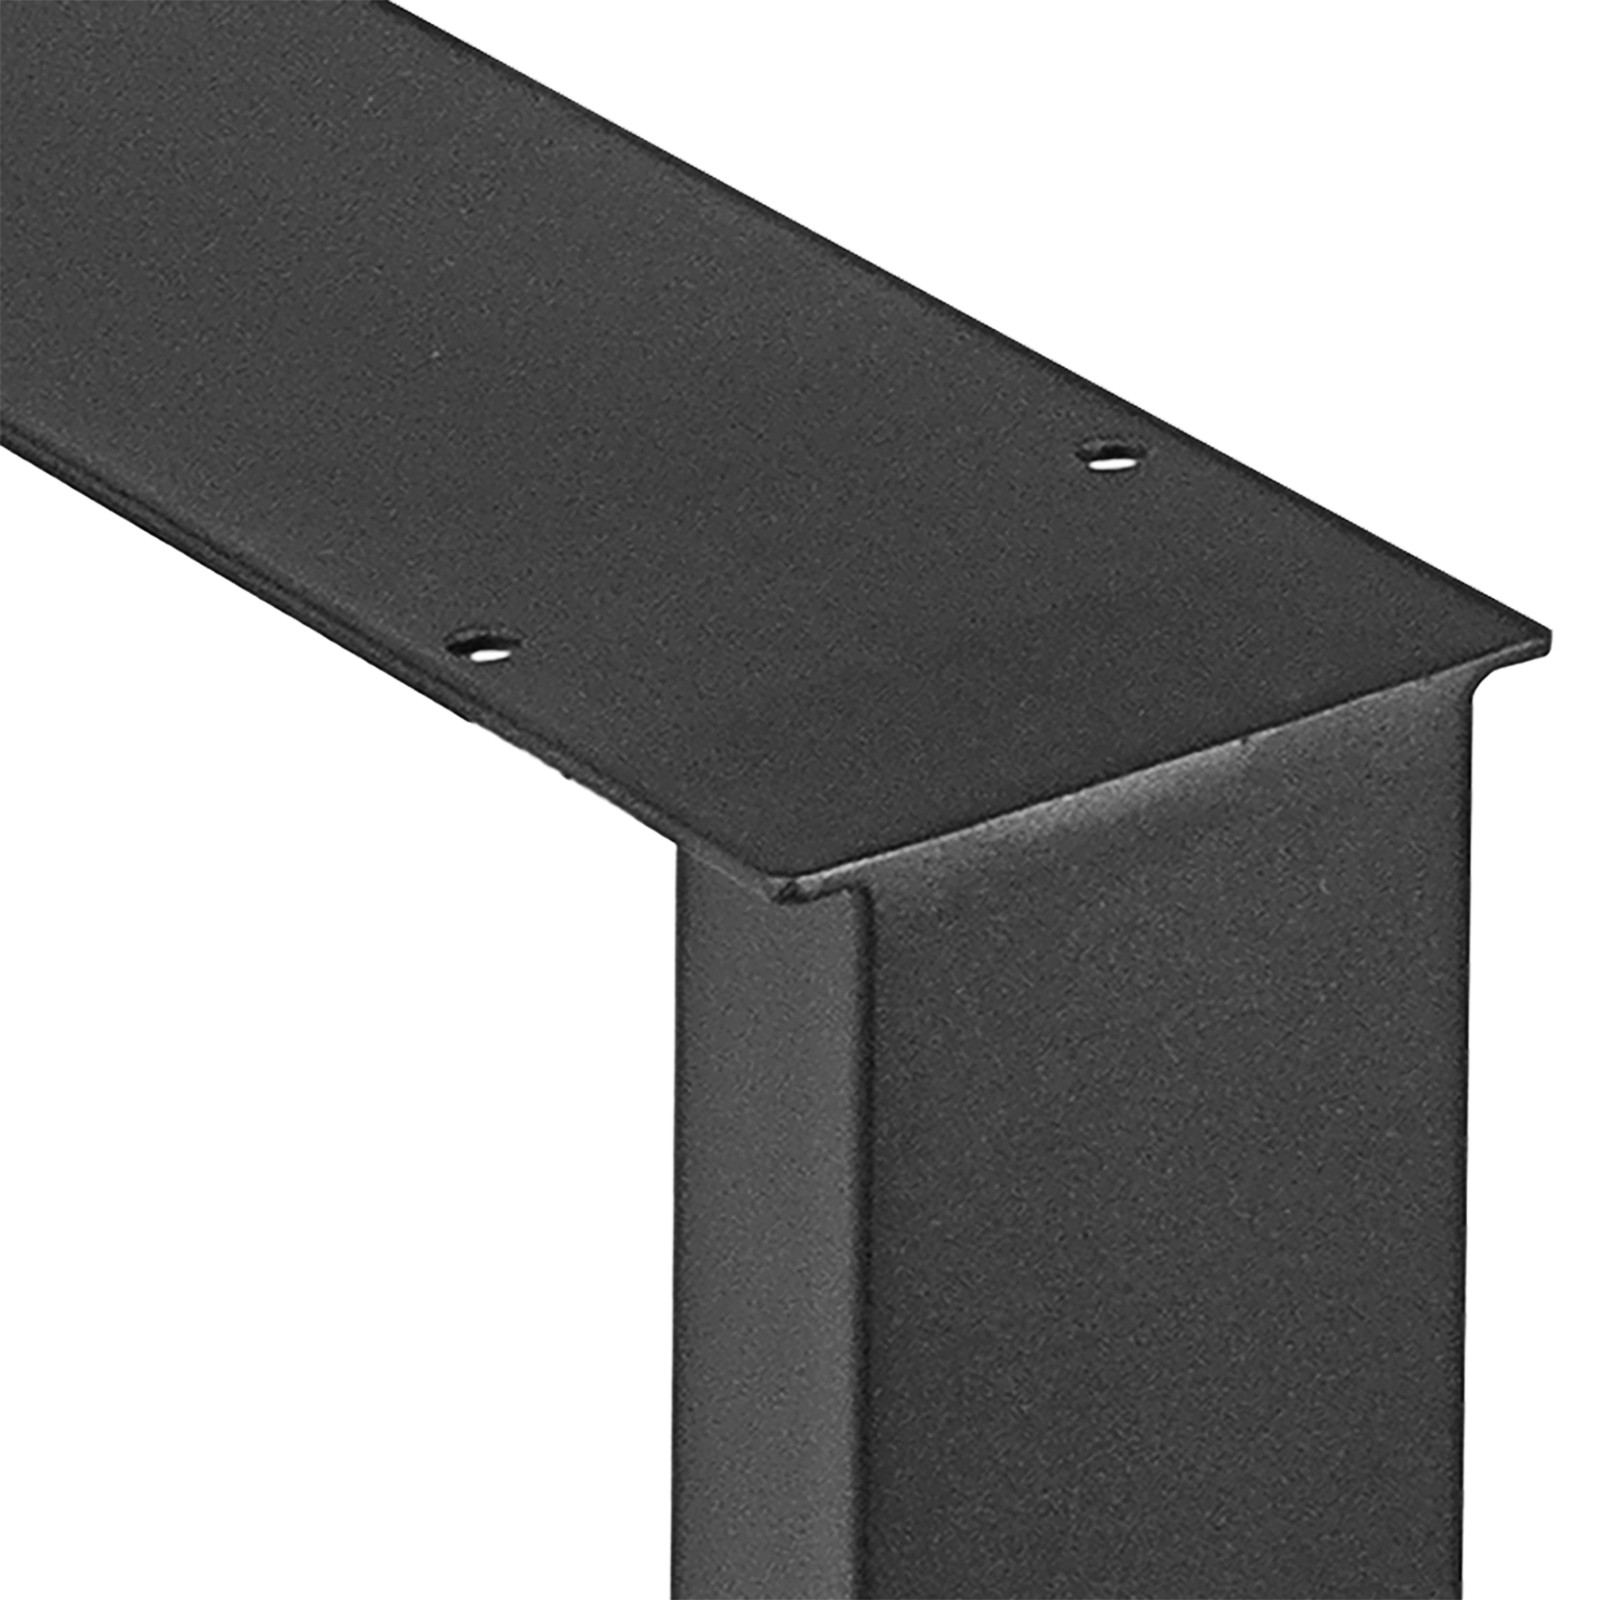 2X-Table-Legs-Black-Dining-Table-Leg-Heavy-Duty-Computer-Desk-Legs-Rectangle thumbnail 31